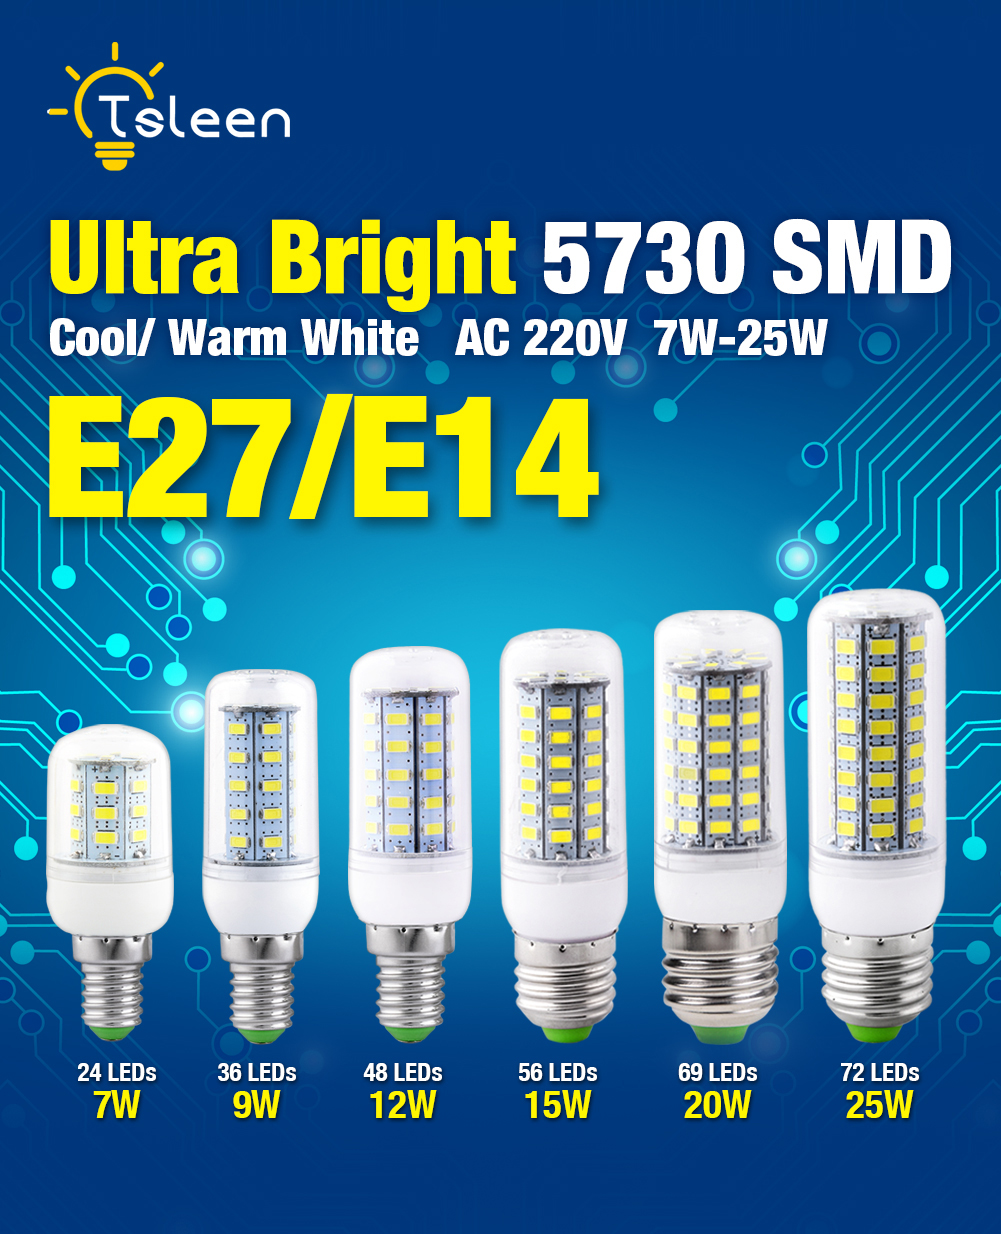 High Quality 220V 7W 9W 12W 15W <font><b>20W</b></font> 25W 5730 SMD <font><b>LED</b></font> Corn Bulb <font><b>Lamp</b></font> Light Warm White Cool White Bulb E27 E14 Base For Home Decor image